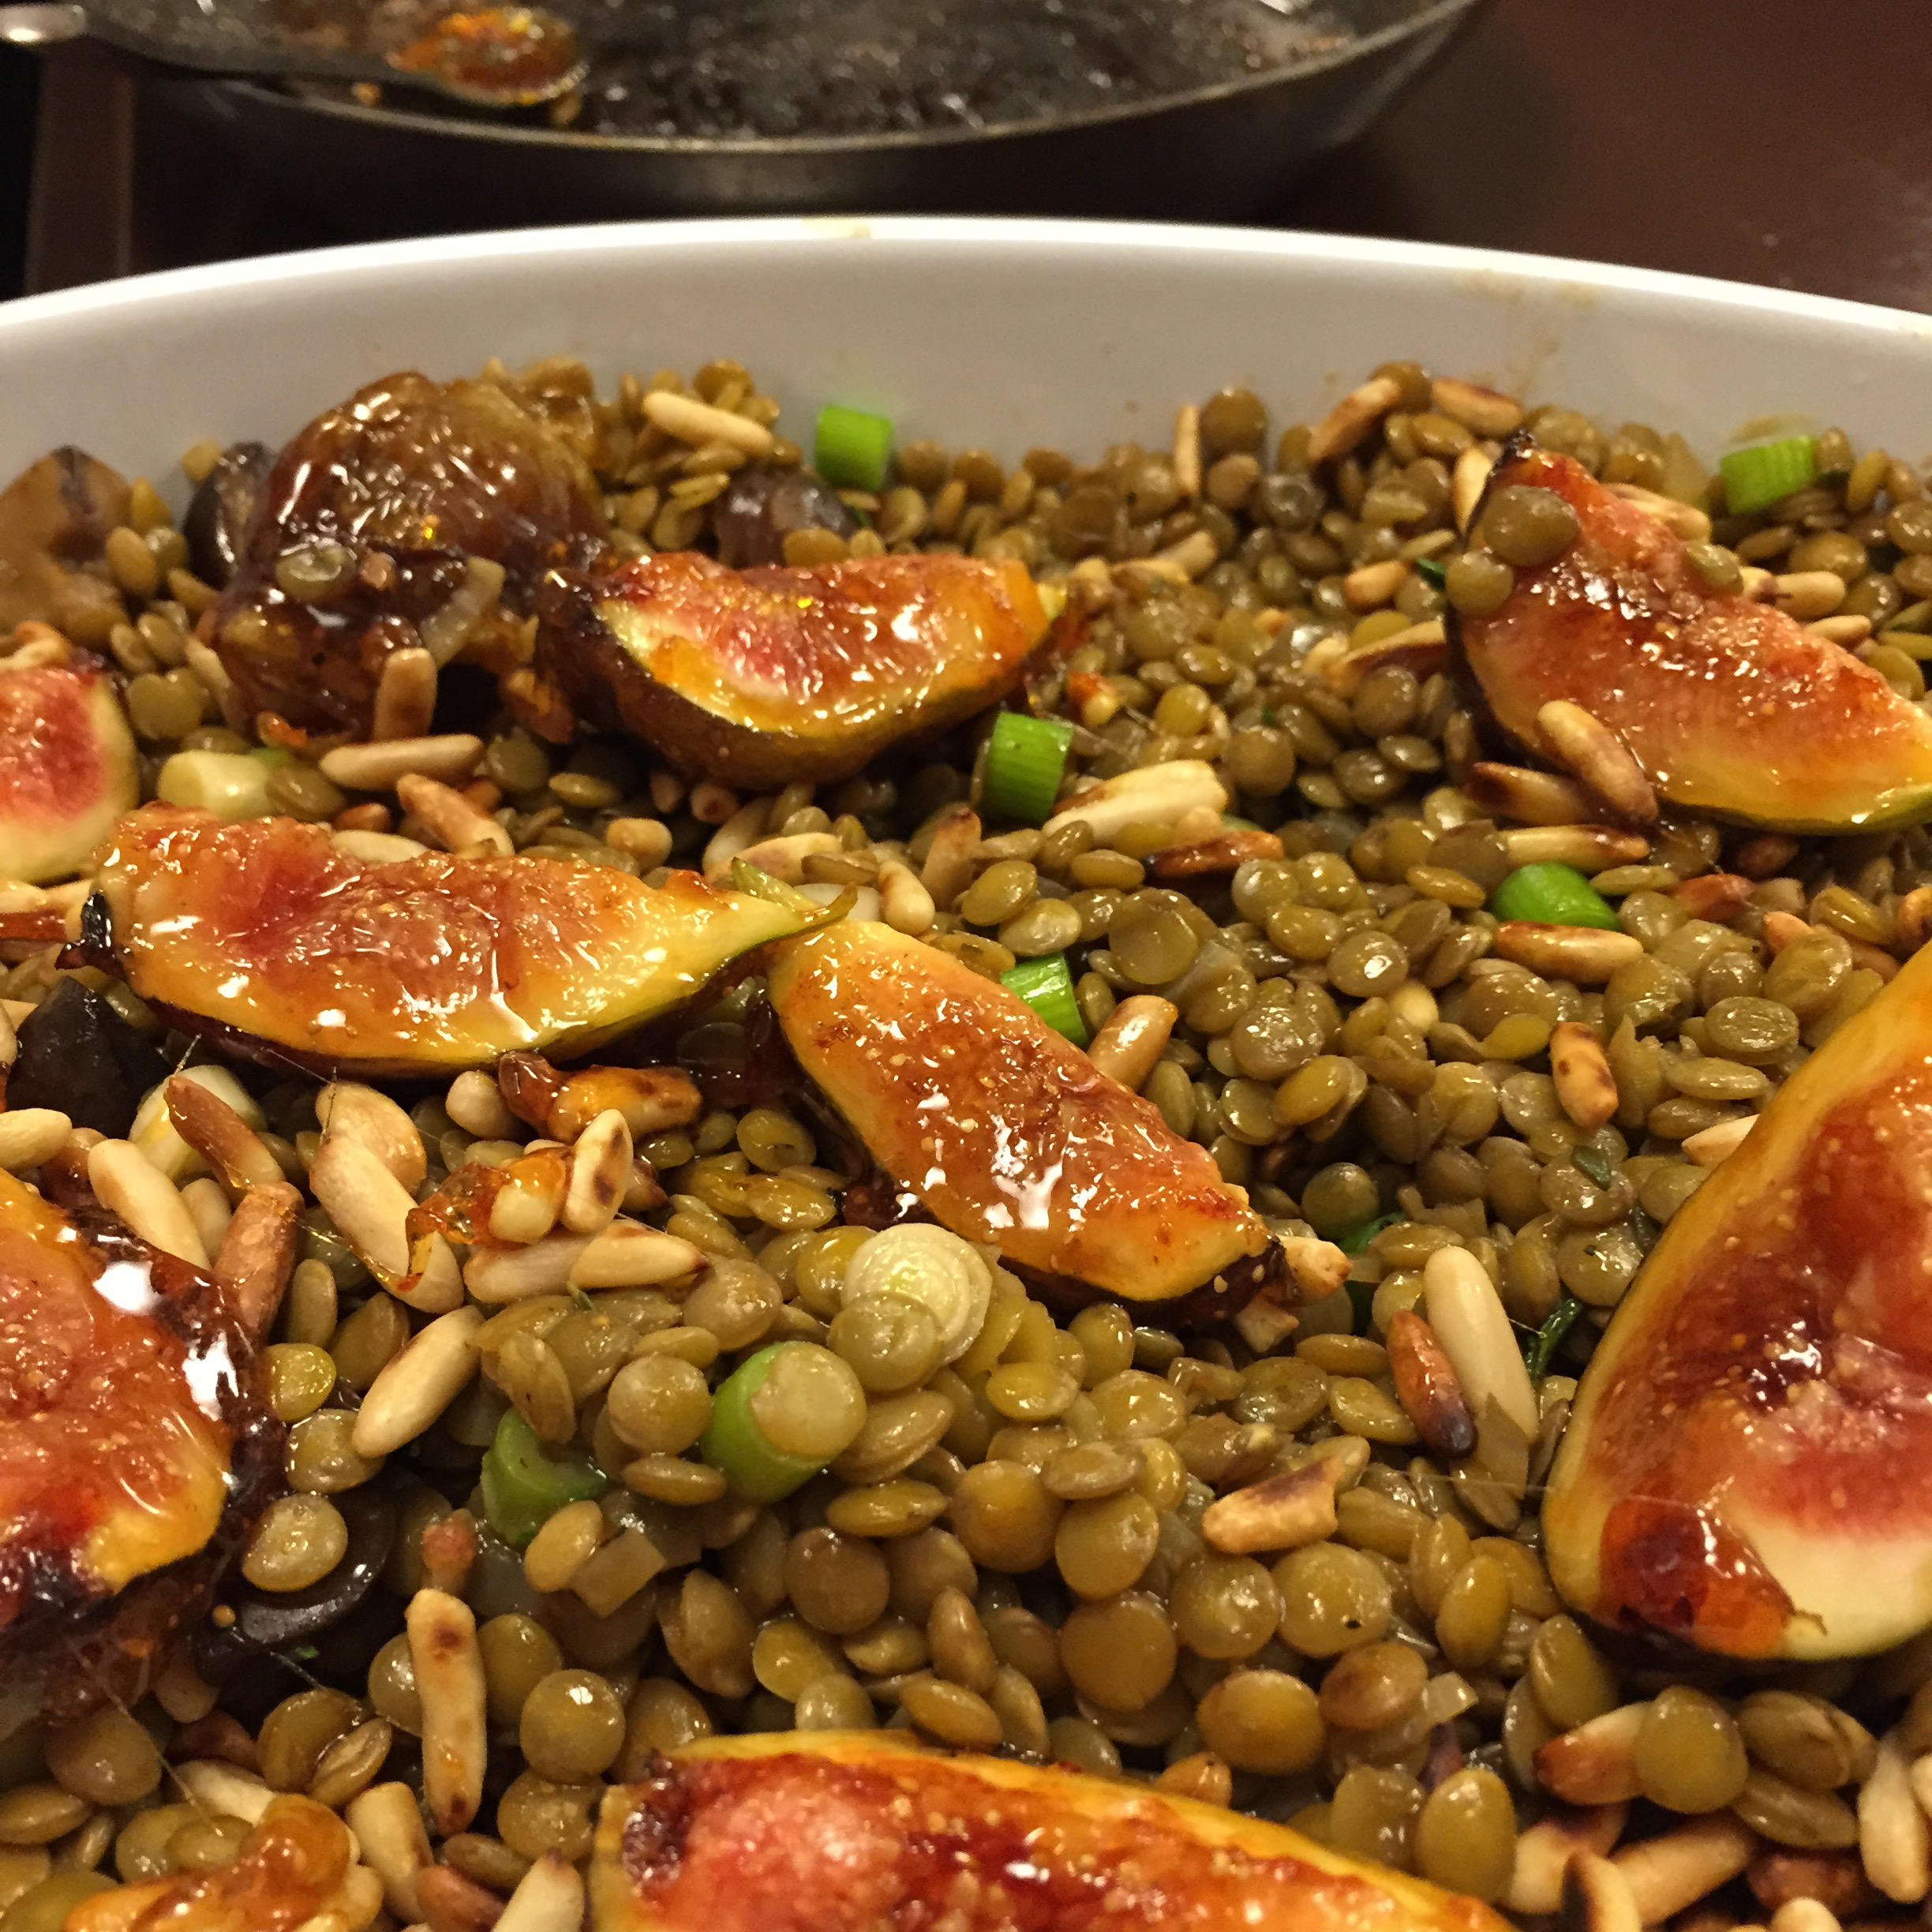 warmer linsensalat mit karamellisierten feigen | warm lentil salad with caramalized figs (vegan)